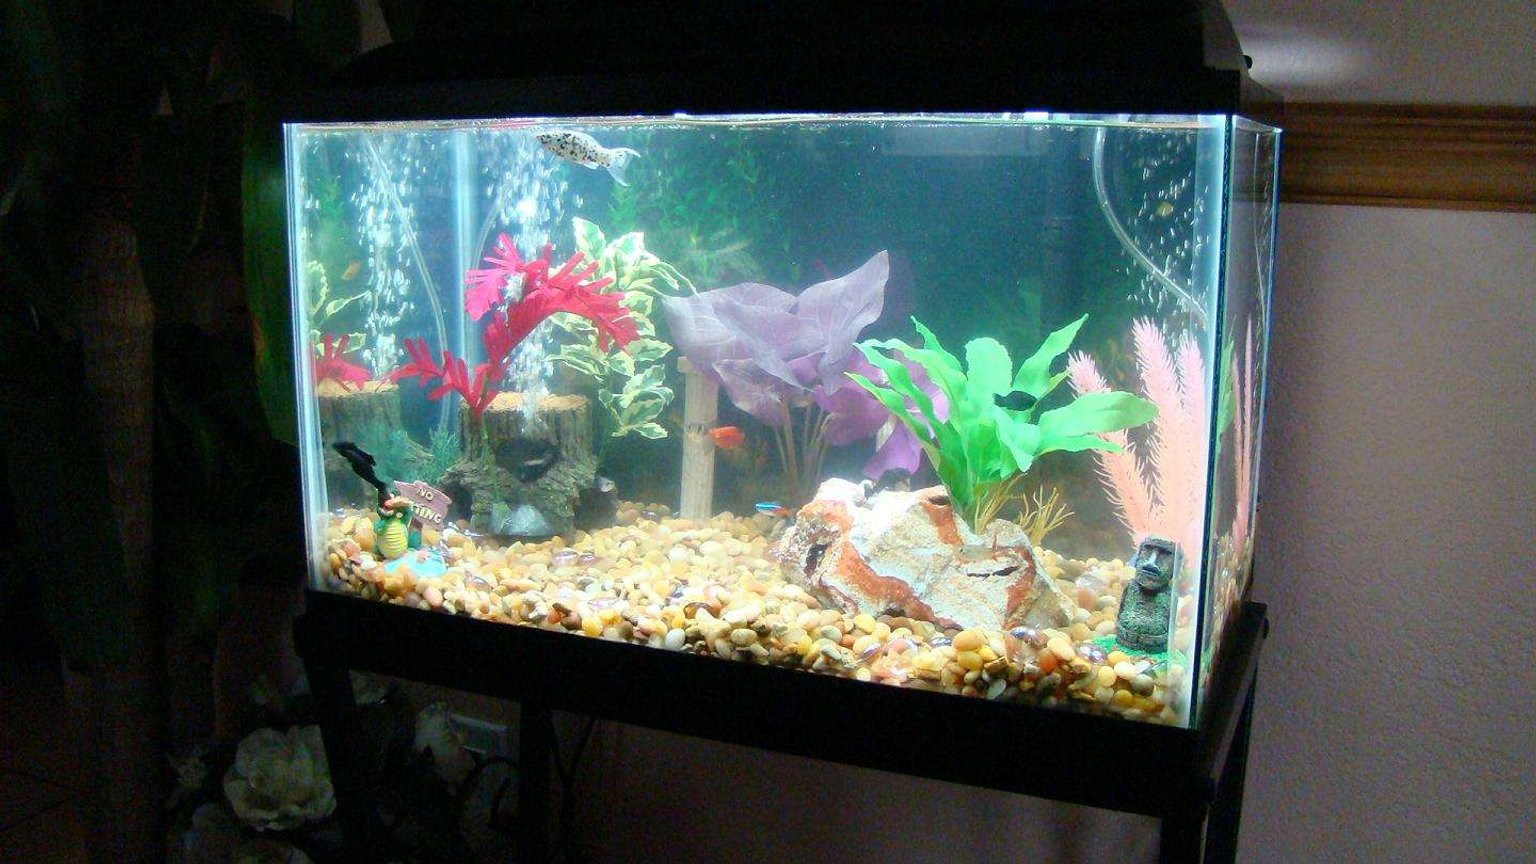 10 gallons freshwater fish tank (mostly fish and non-living decorations) - angle view